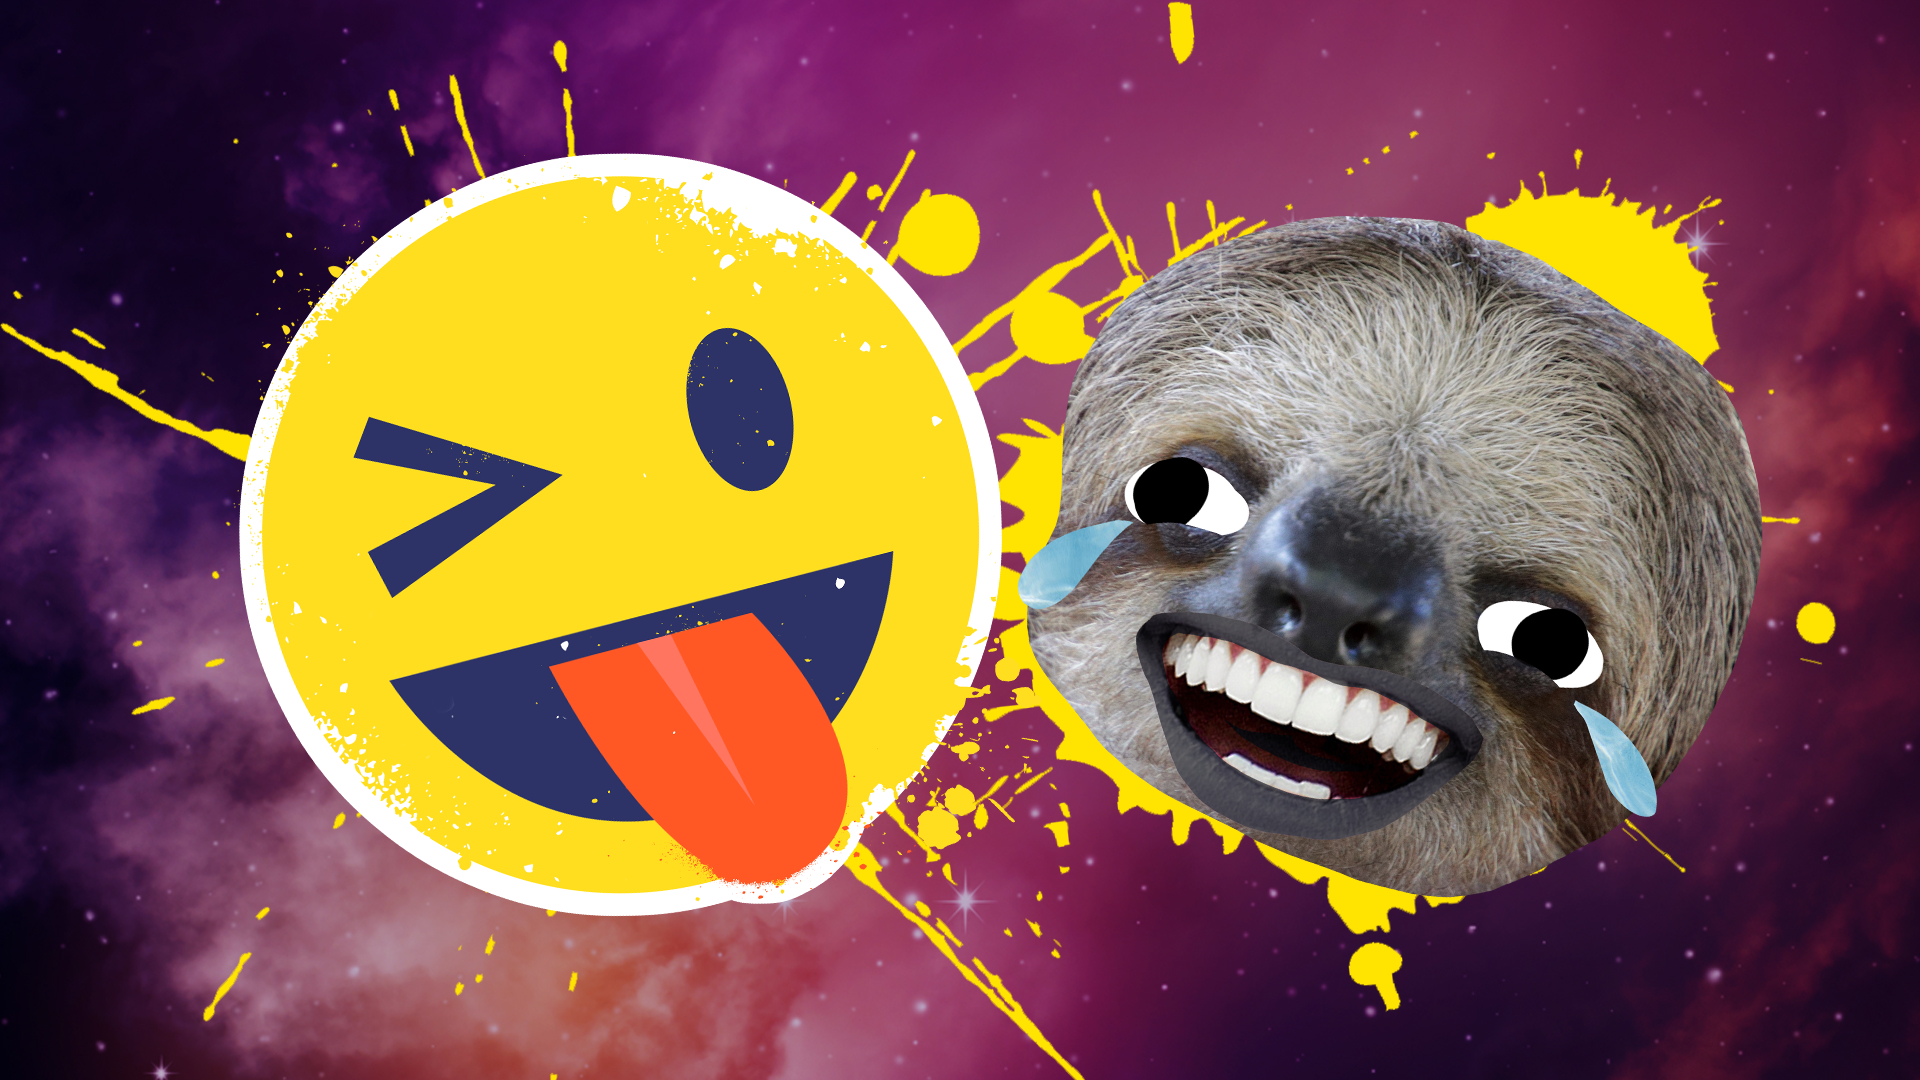 A winking emoji and a laughing sloth